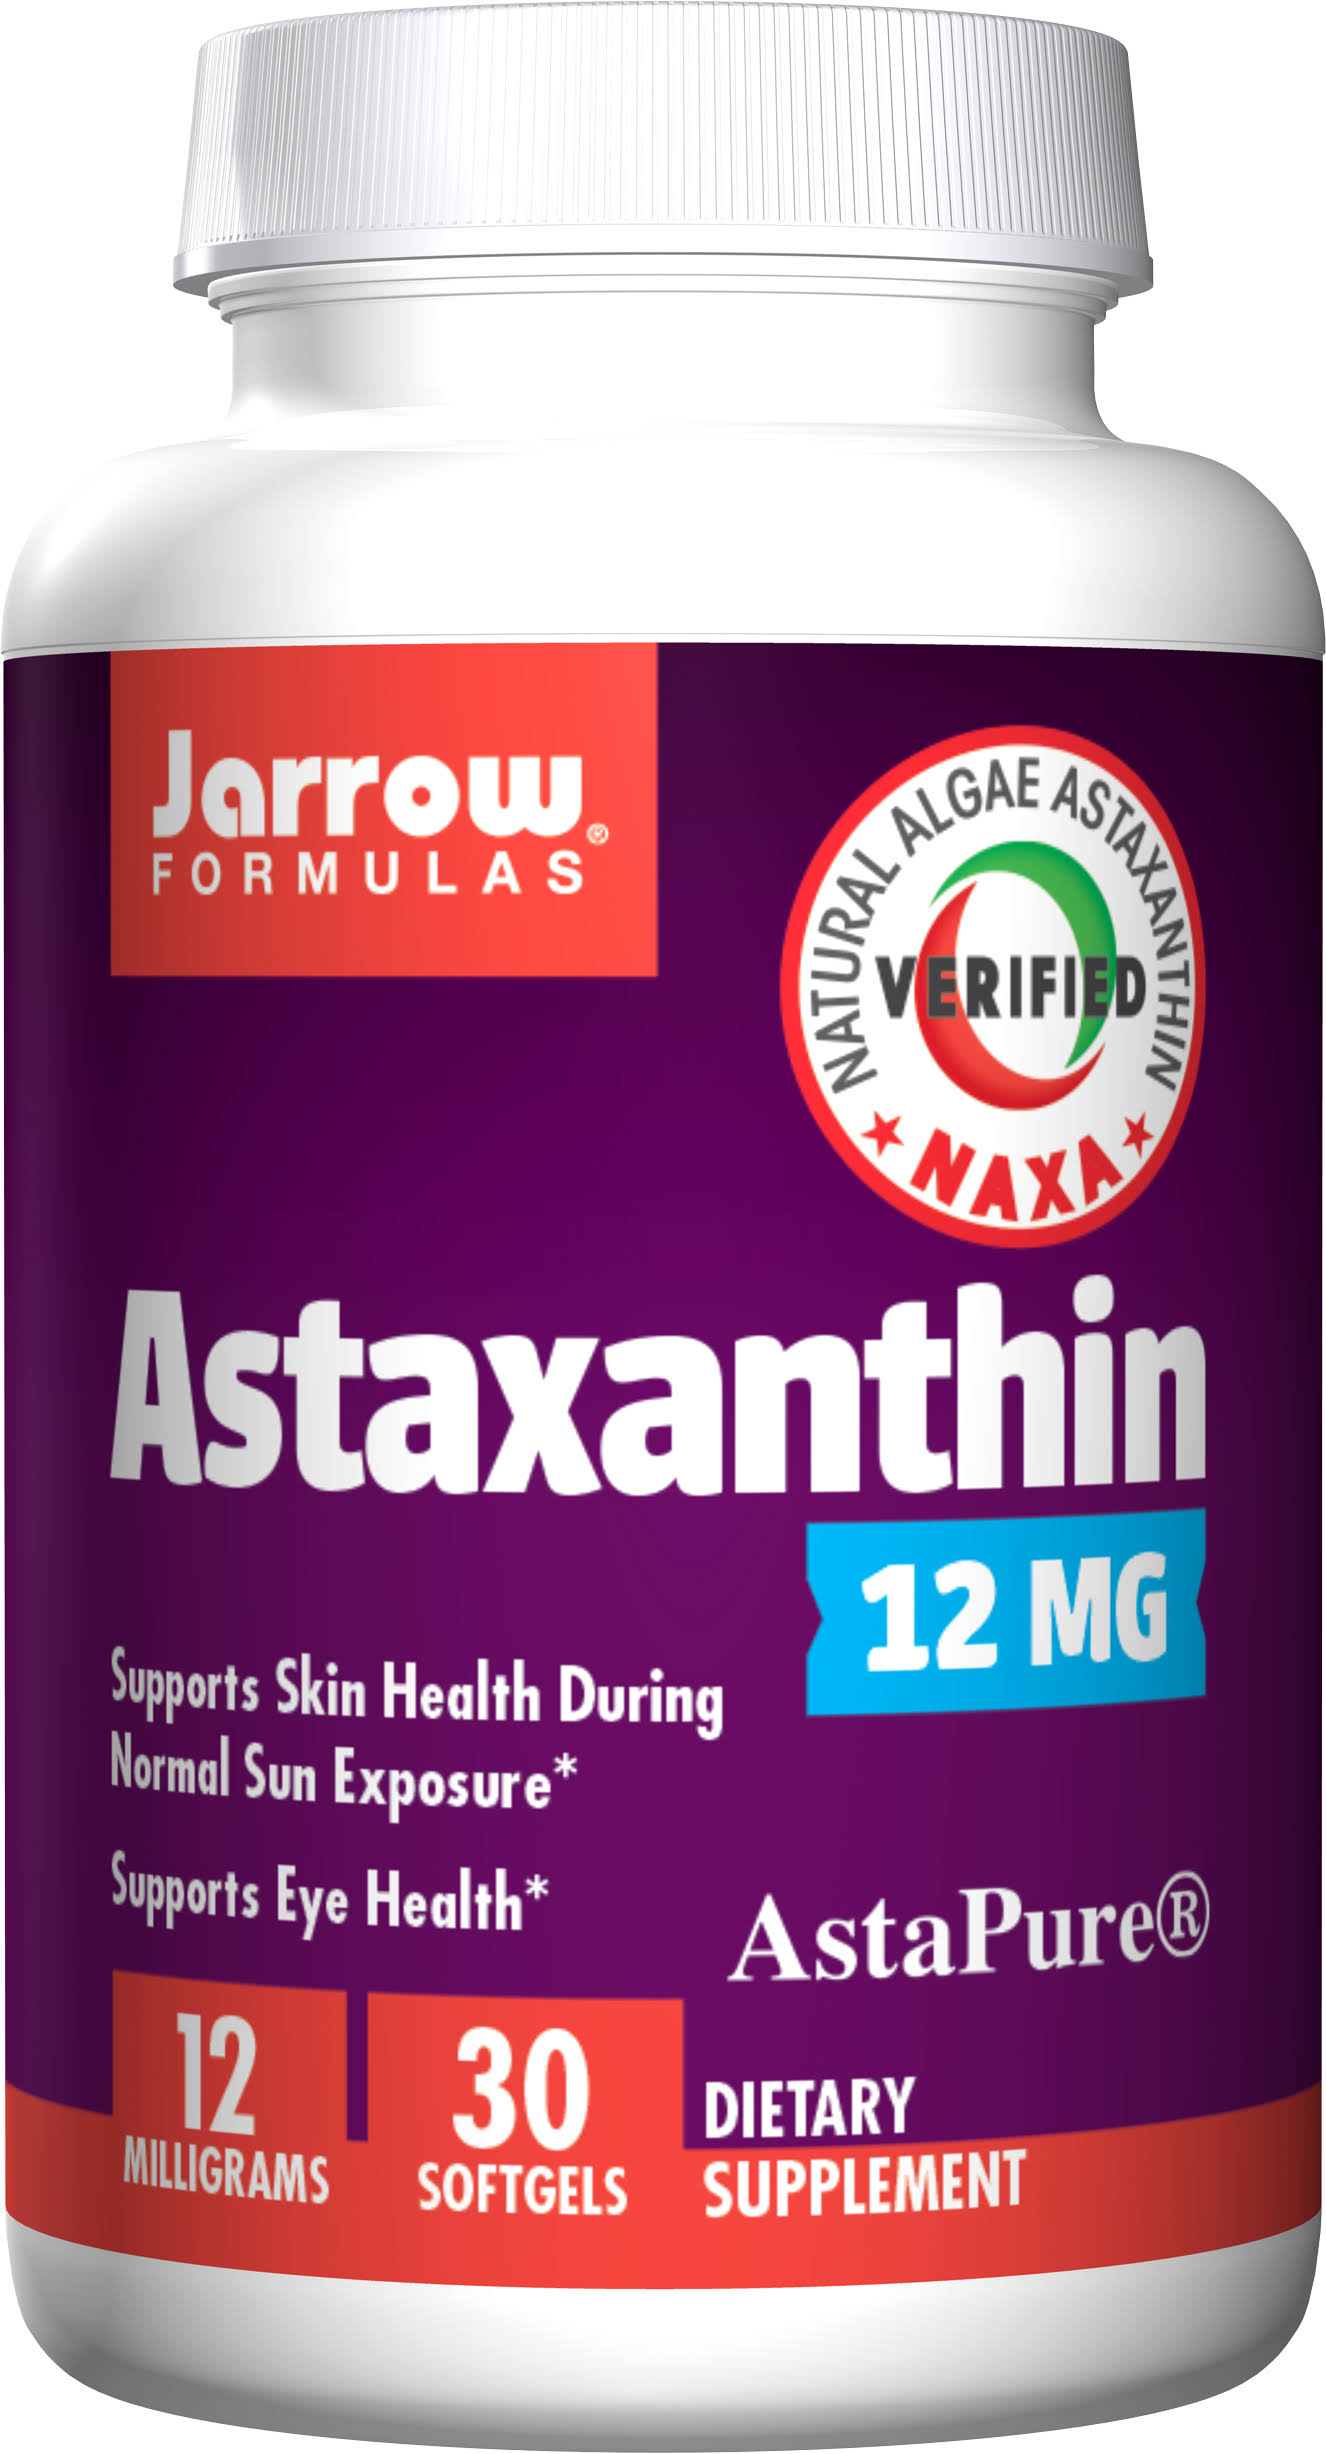 Jarrow Formulas Astaxanthin - 12mg, 30 Softgels